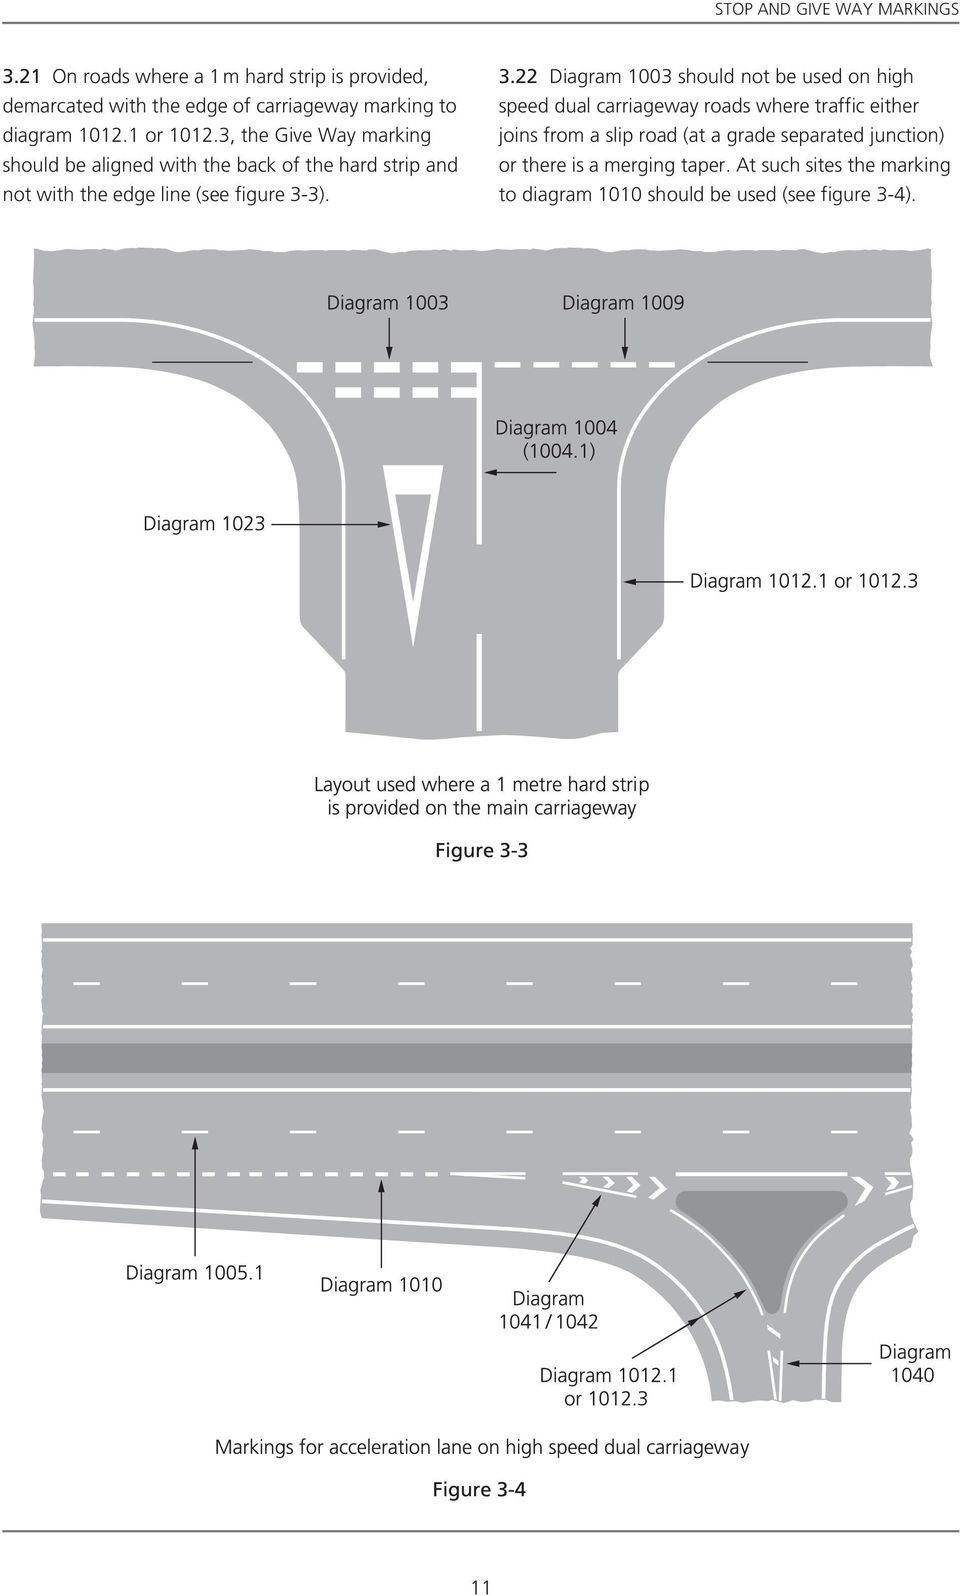 3, the Give Way marking should be aligned with the back of the hard strip and not with the edge line (see figure 3-